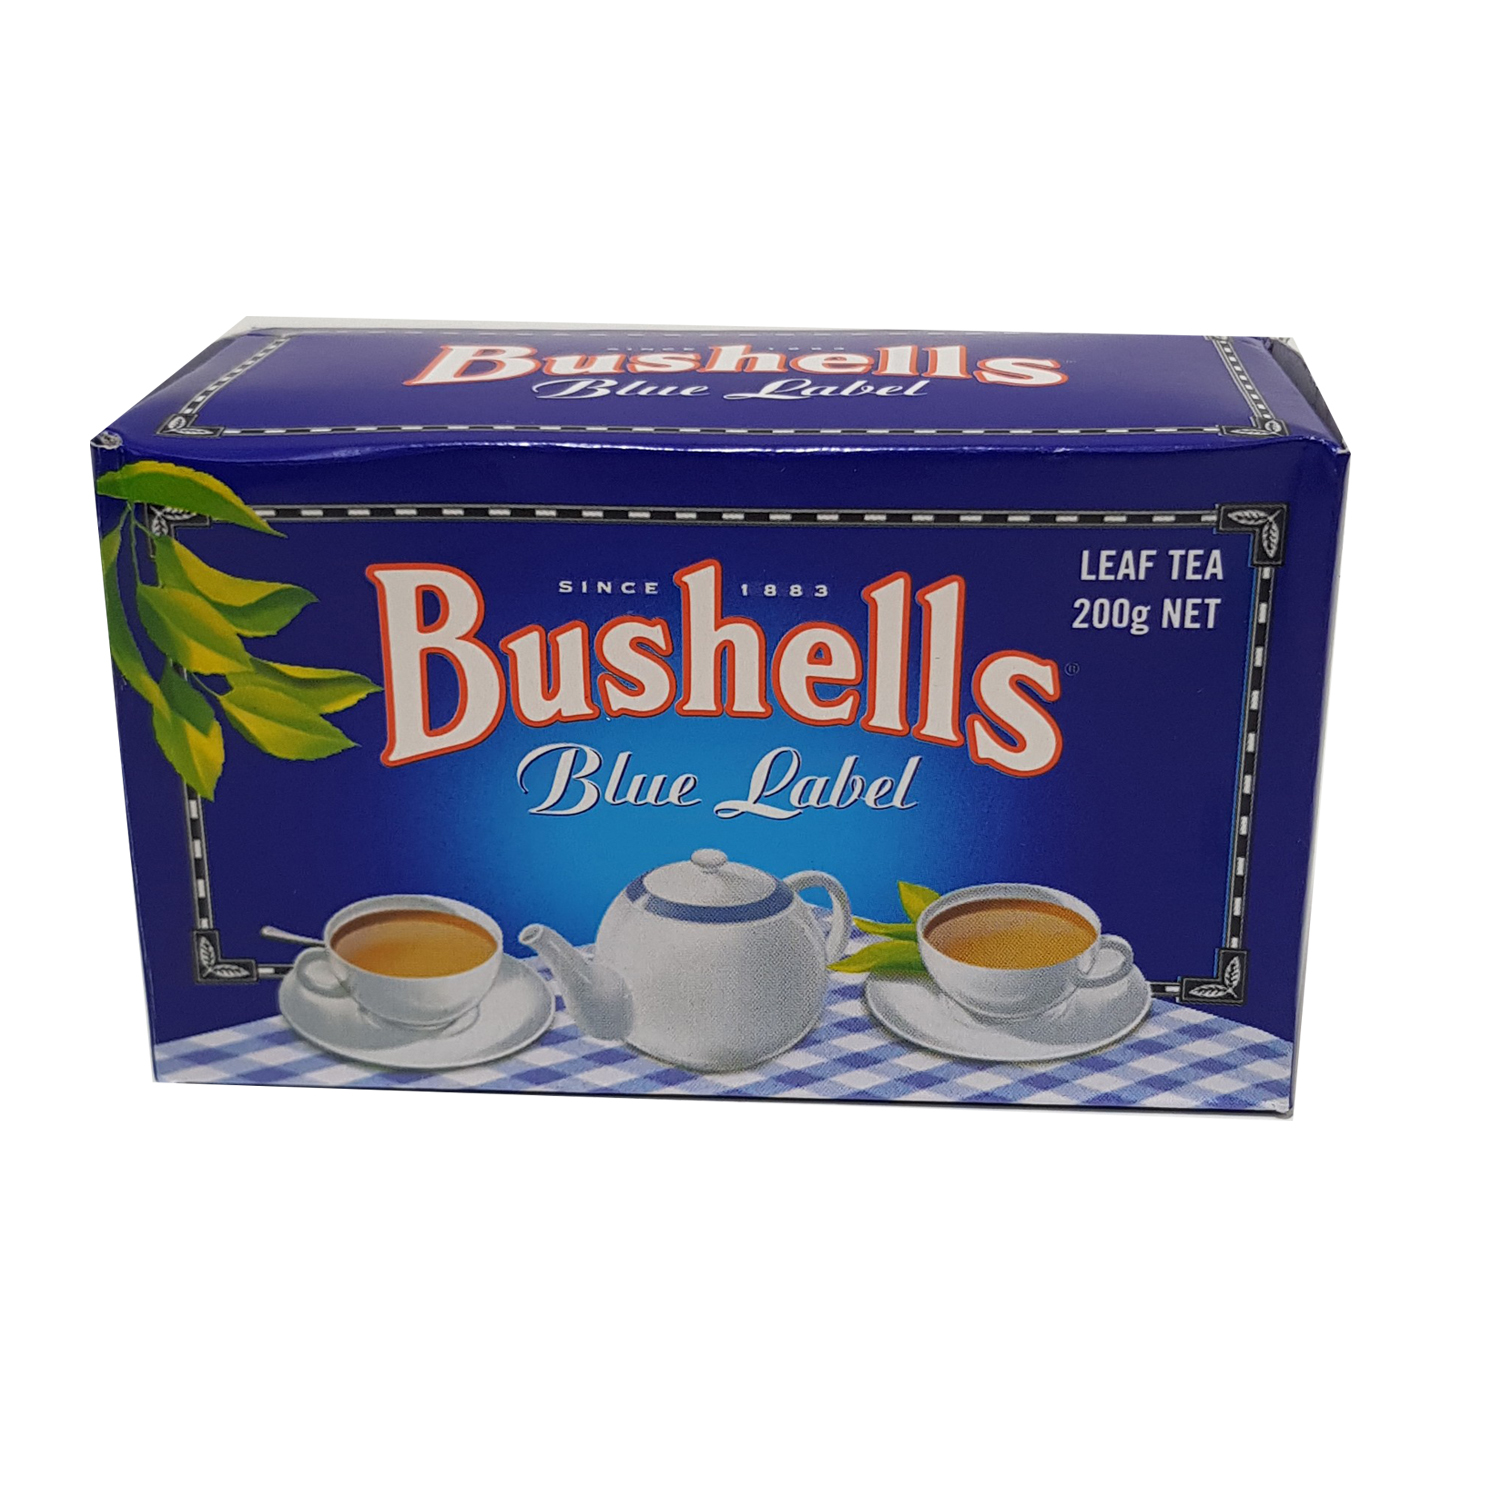 Bushells Tea Leaves	200g